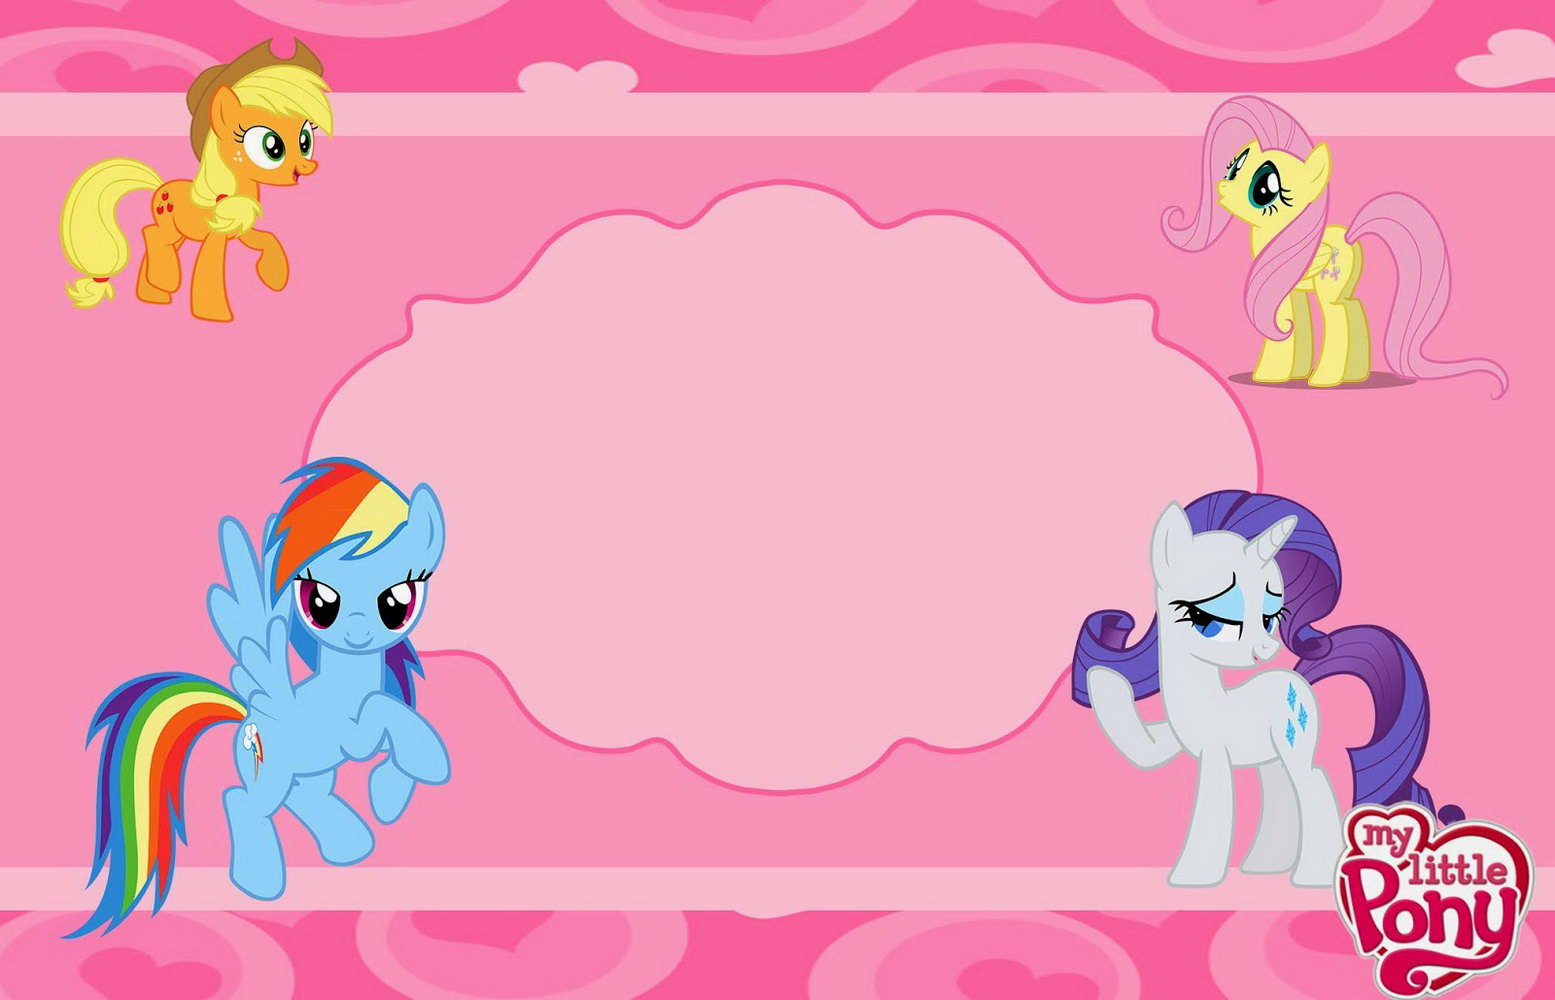 Blank My Little Pony Invitation Template